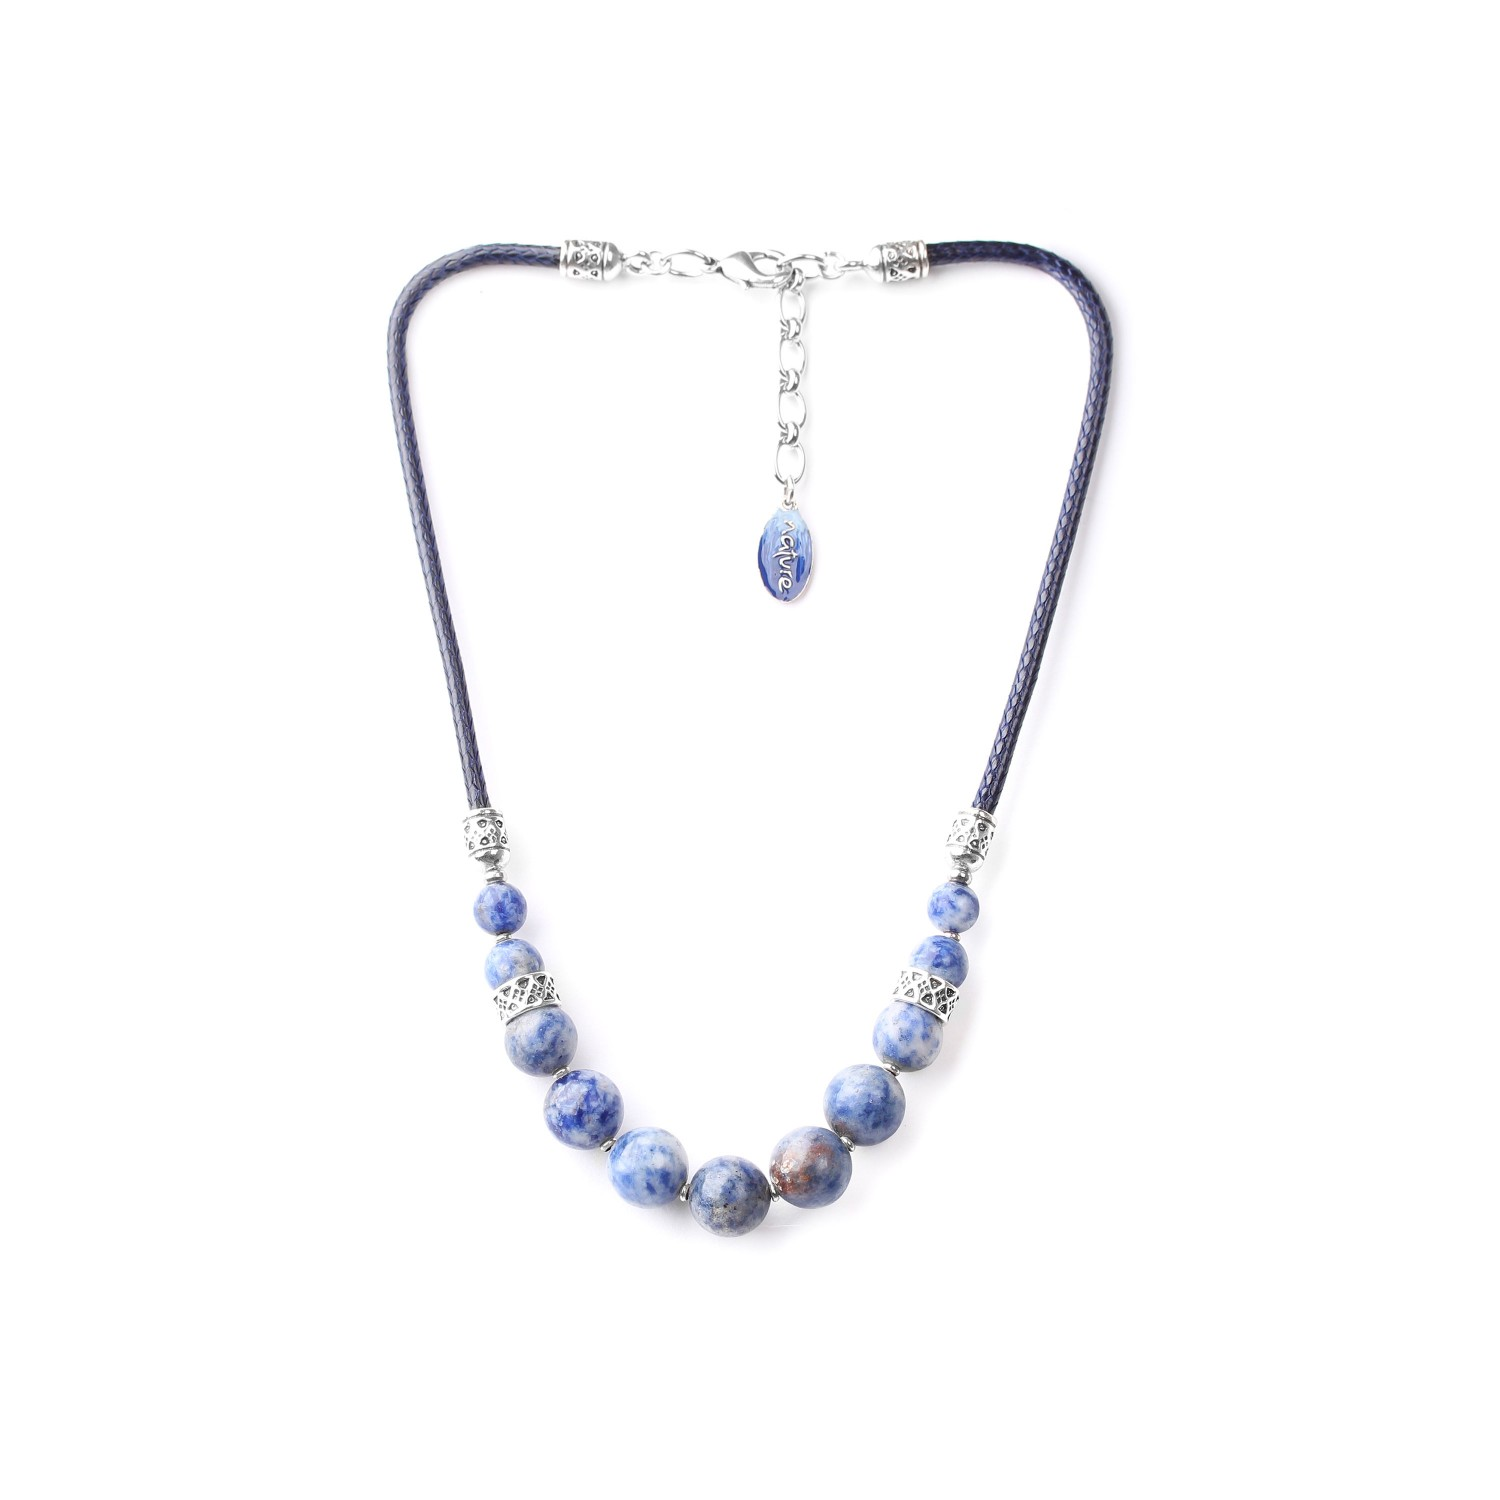 CYCLADES graduated beads necklace